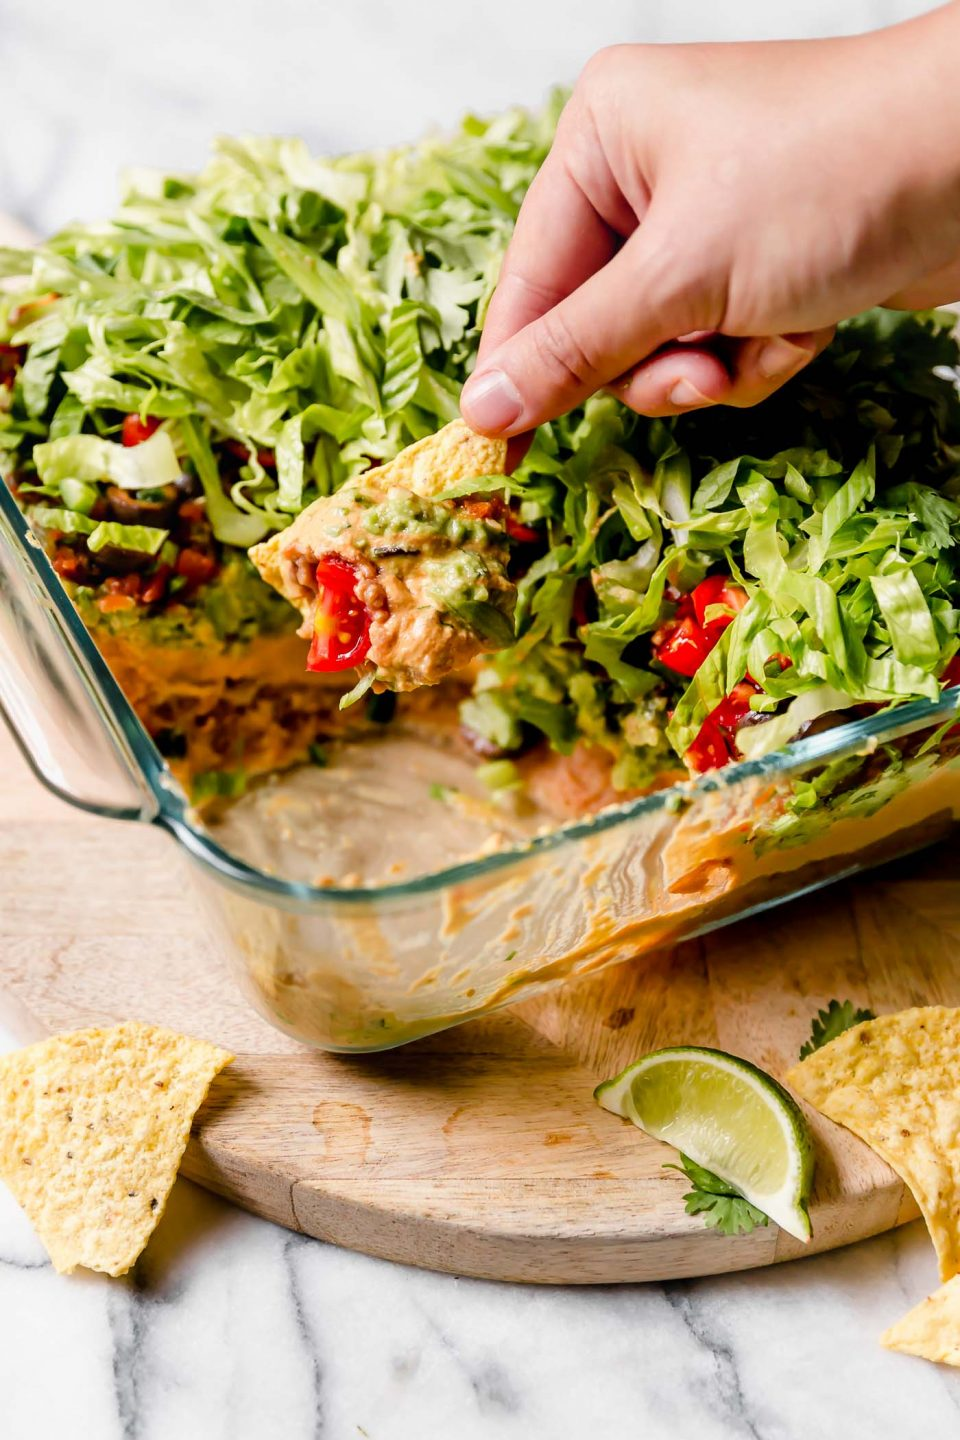 Straight-on photo of this vegan 7-Layer Dip recipe shown in clear Pyrex DEEP baking dish. The dish is sitting on a light wood board, with some of the dip removed from the container. Woman's hand is reaching in with a tortilla chip to remove some of the dip.